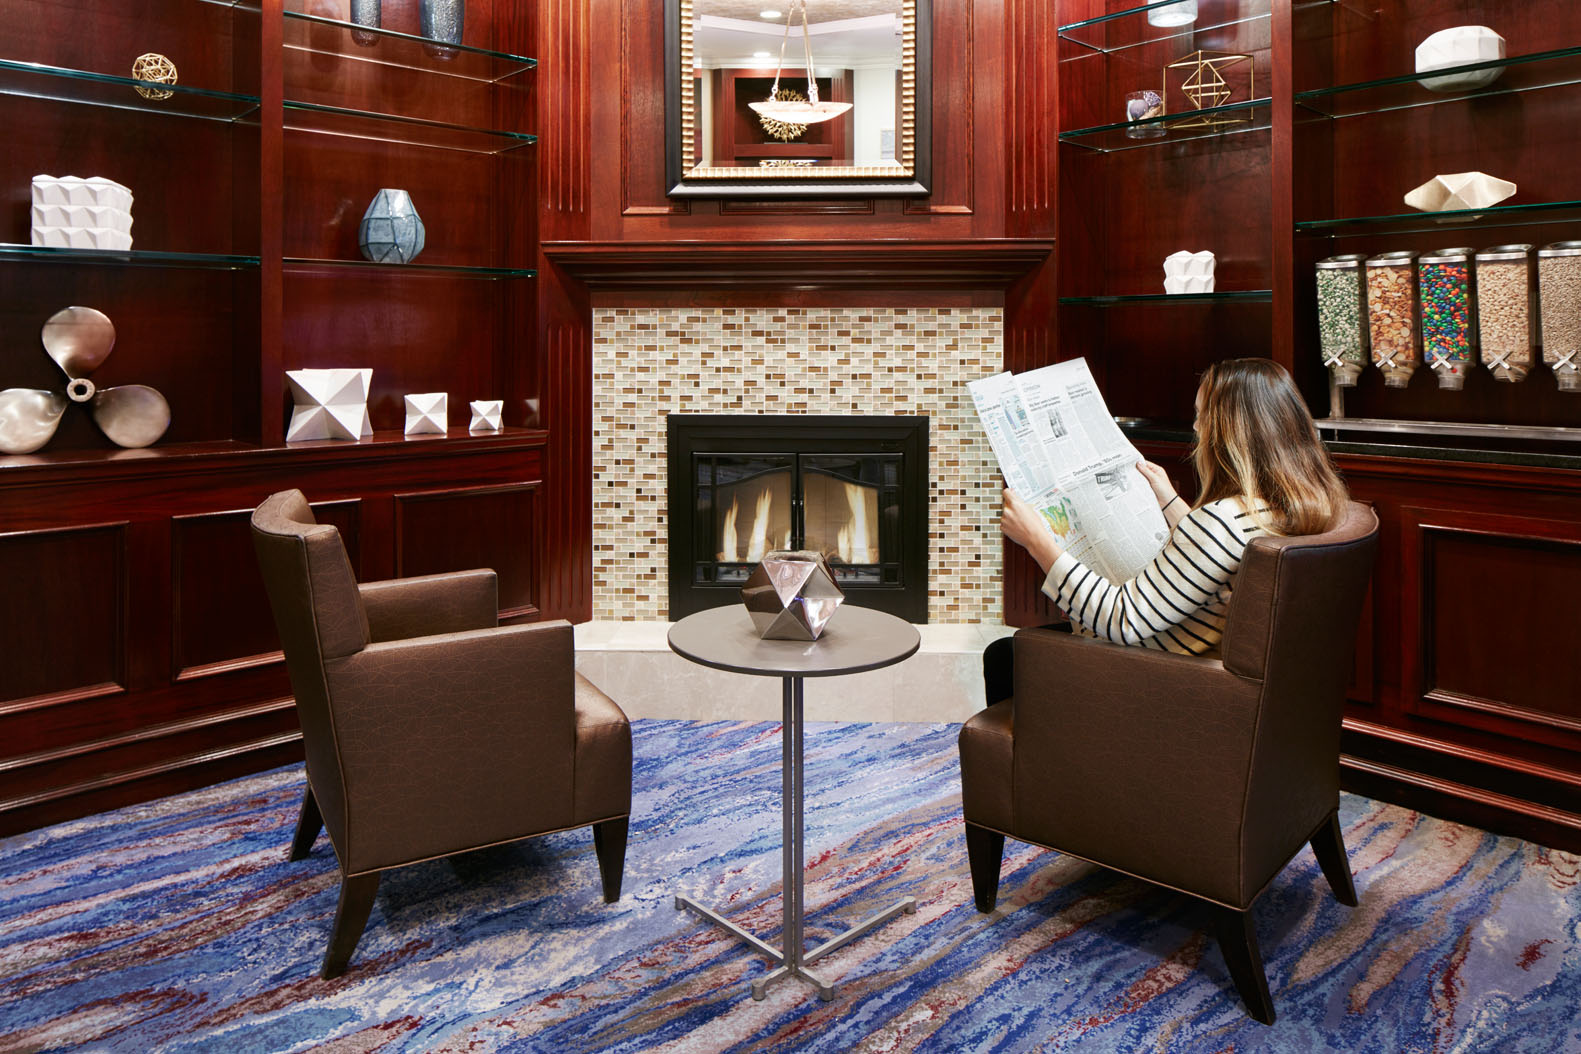 living room boston furnitures club quarters hotel in hi tech financial district at